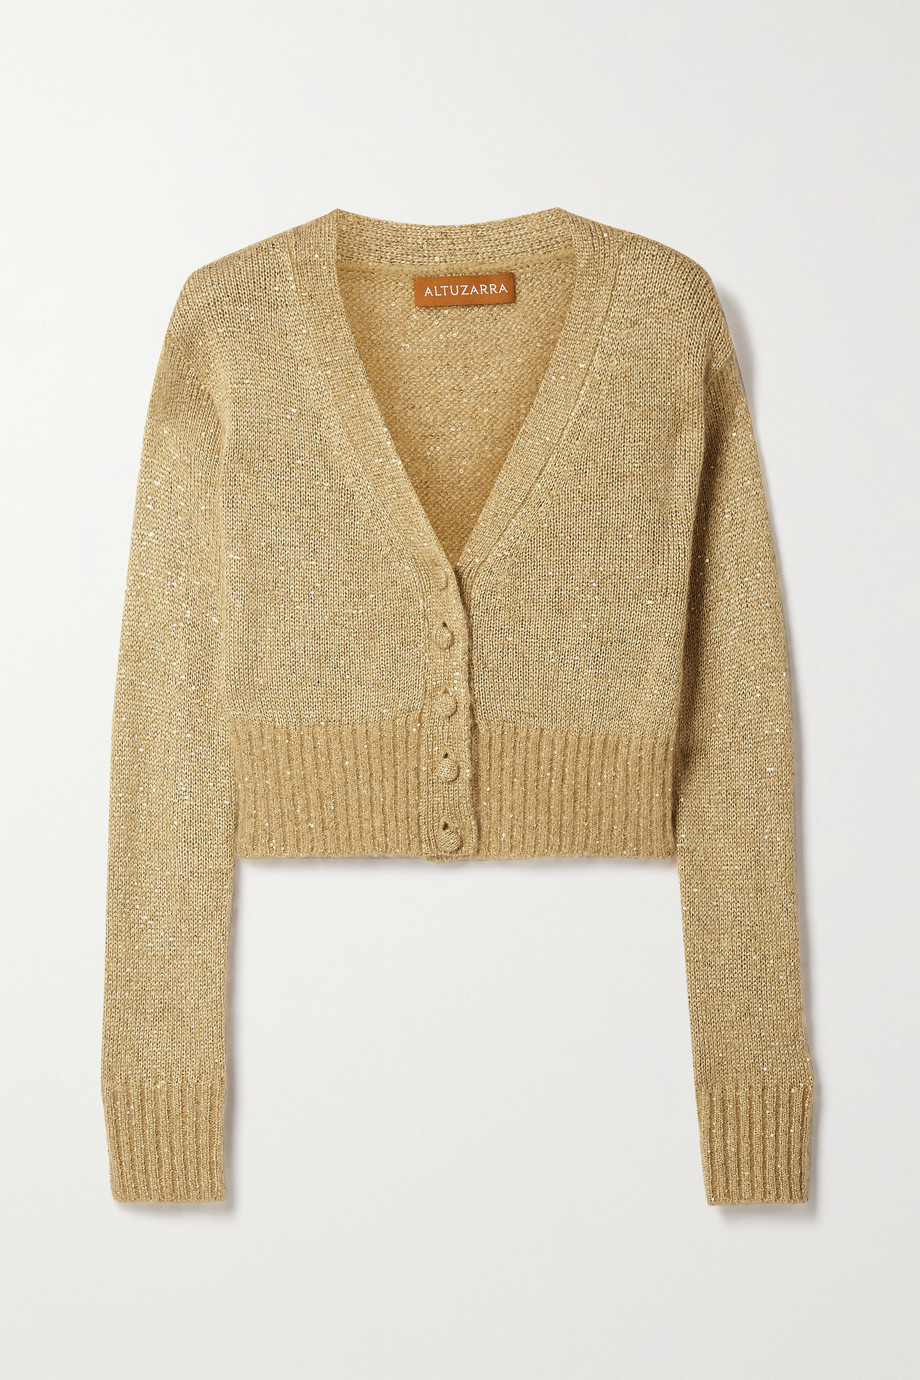 Altuzarra Isla cropped sequin-embellished knitted cardigan